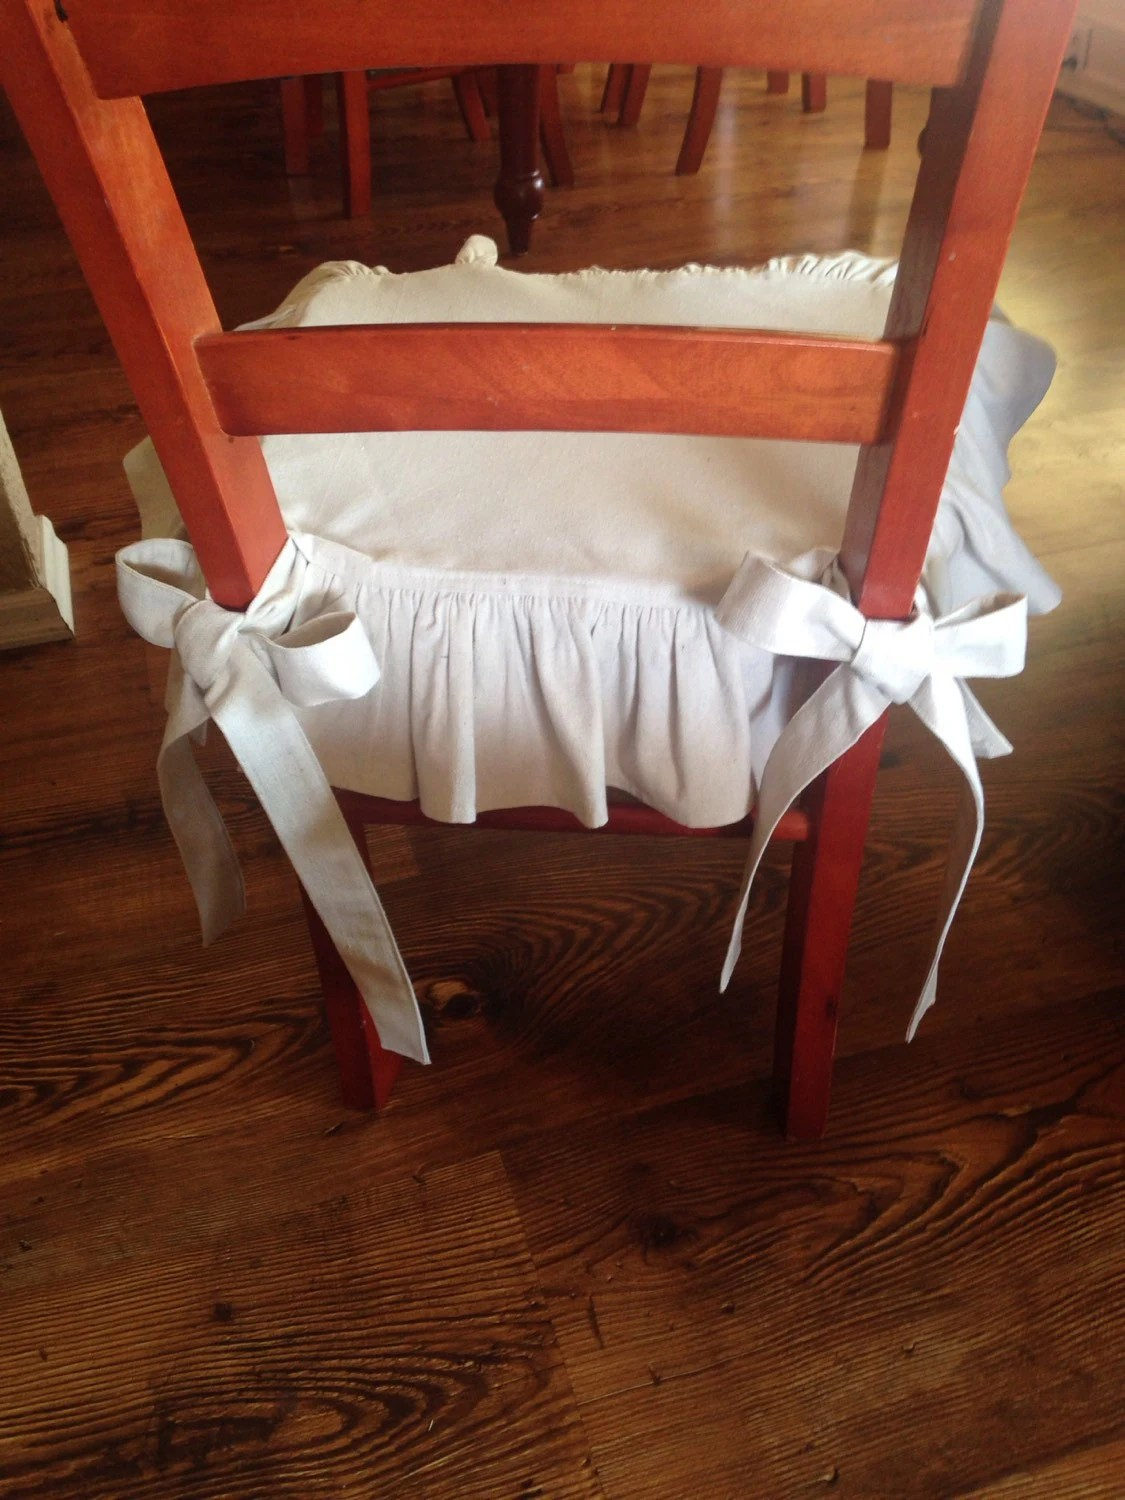 dining chair seat covers etsy are necessary wedding drop cloth cover with back ruffle and wide ties